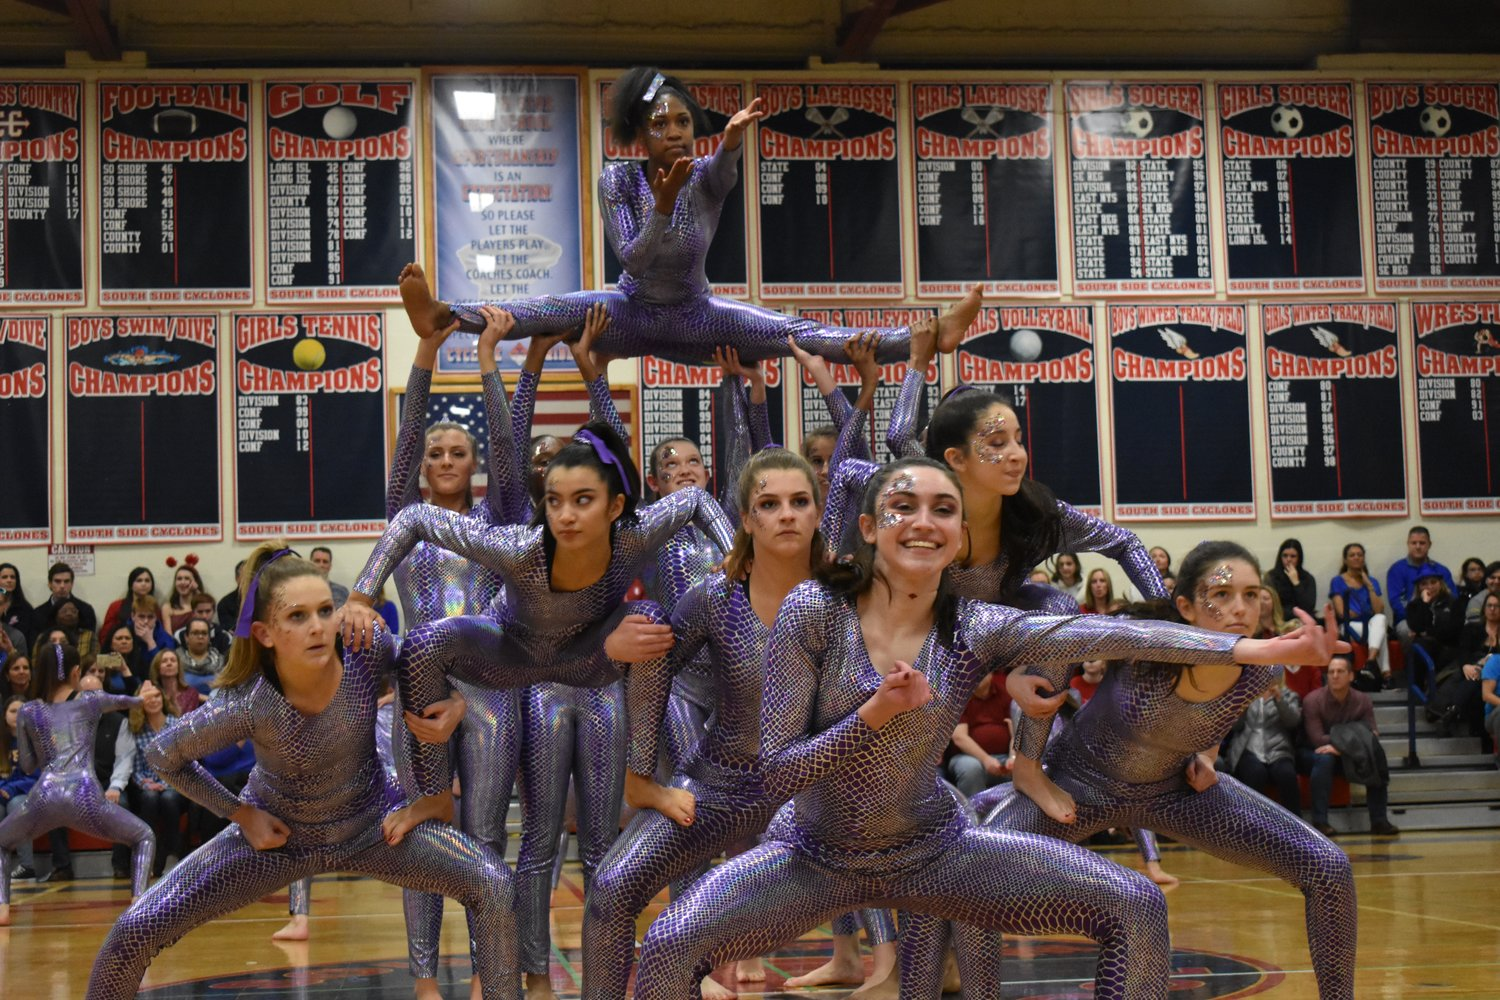 The Red Team, which won the dance category, excited the crowd with high-energy routines last Friday and Saturday.